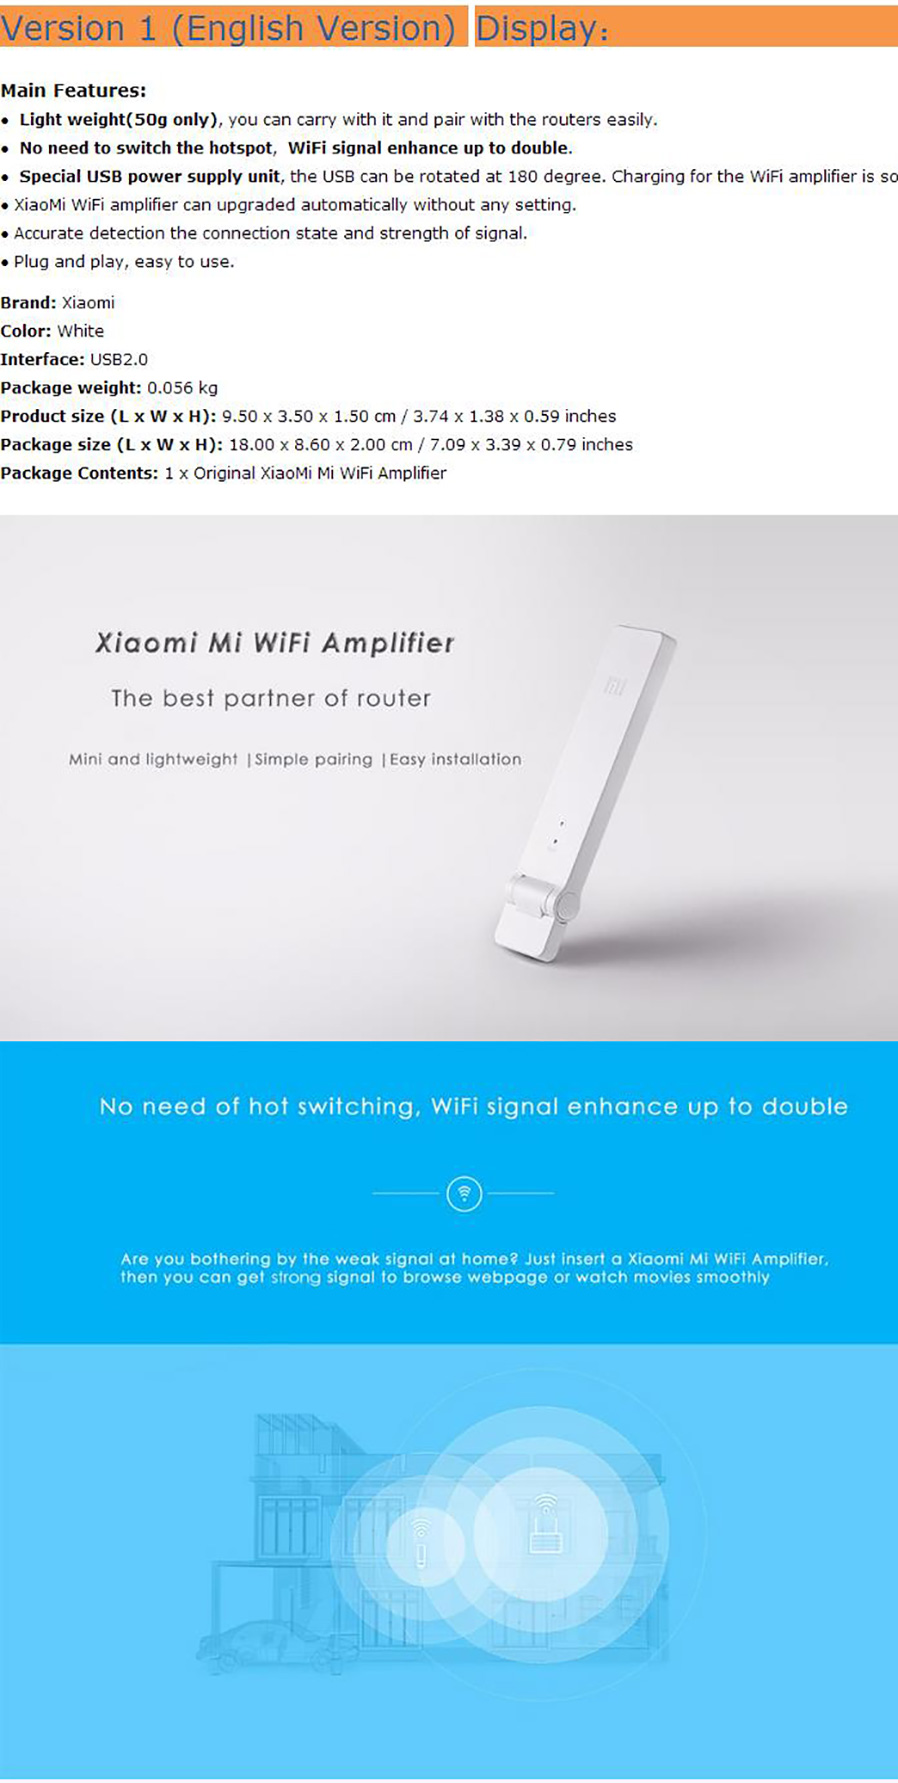 Original Xiaomi Wirless Mi Wi Fi Amplifier 2 Expander For Router Wifi Range Repeater Extender 300mbps Brand Name Interface Usb 20 Transmission Rate Antenna Built In Network Frequency 24ghz Chip Type Ralink